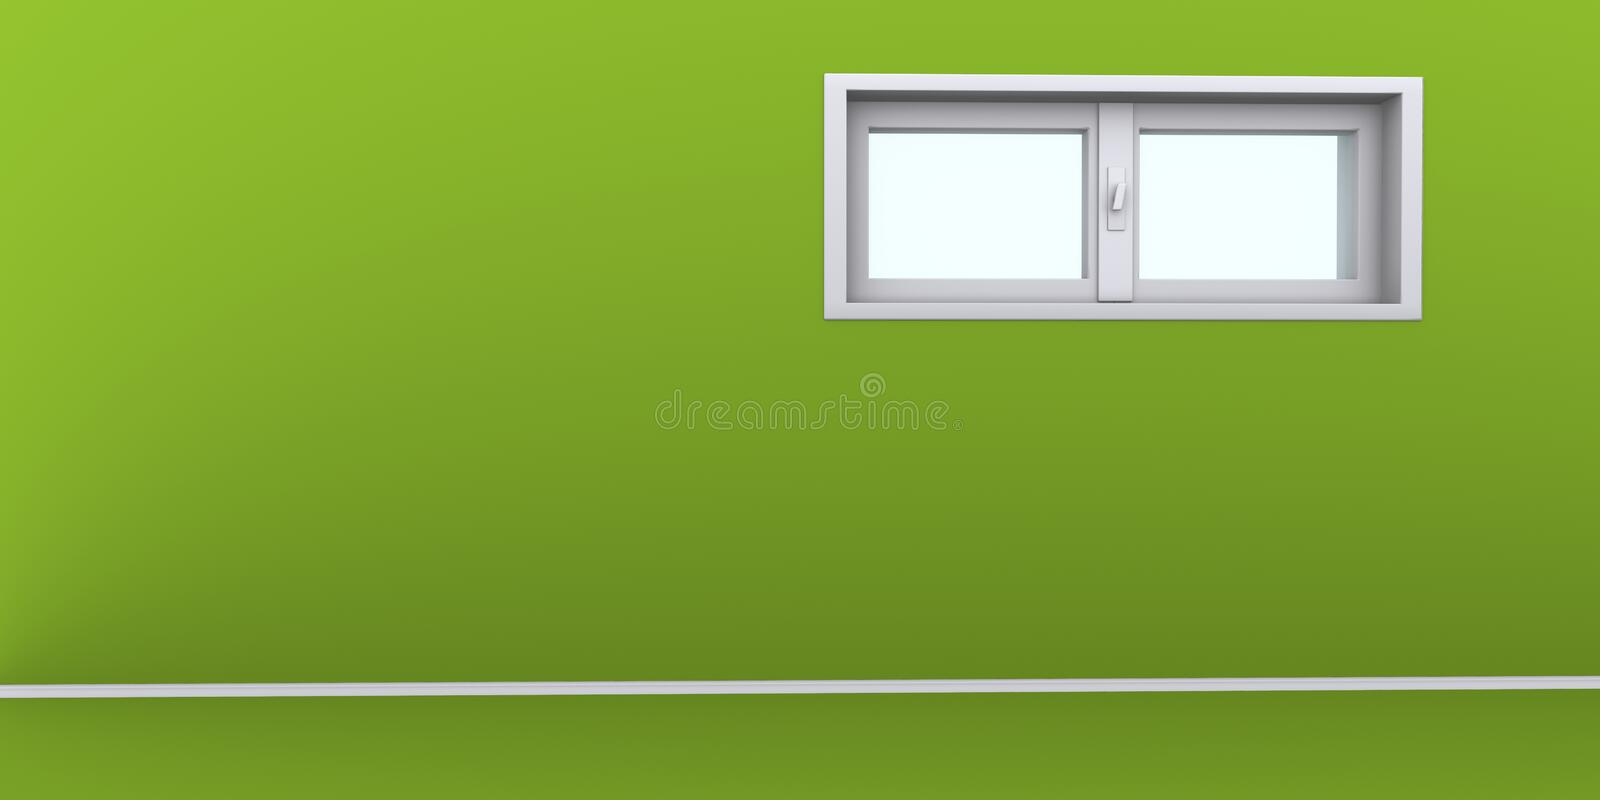 Empty green wall with windows royalty free stock photos